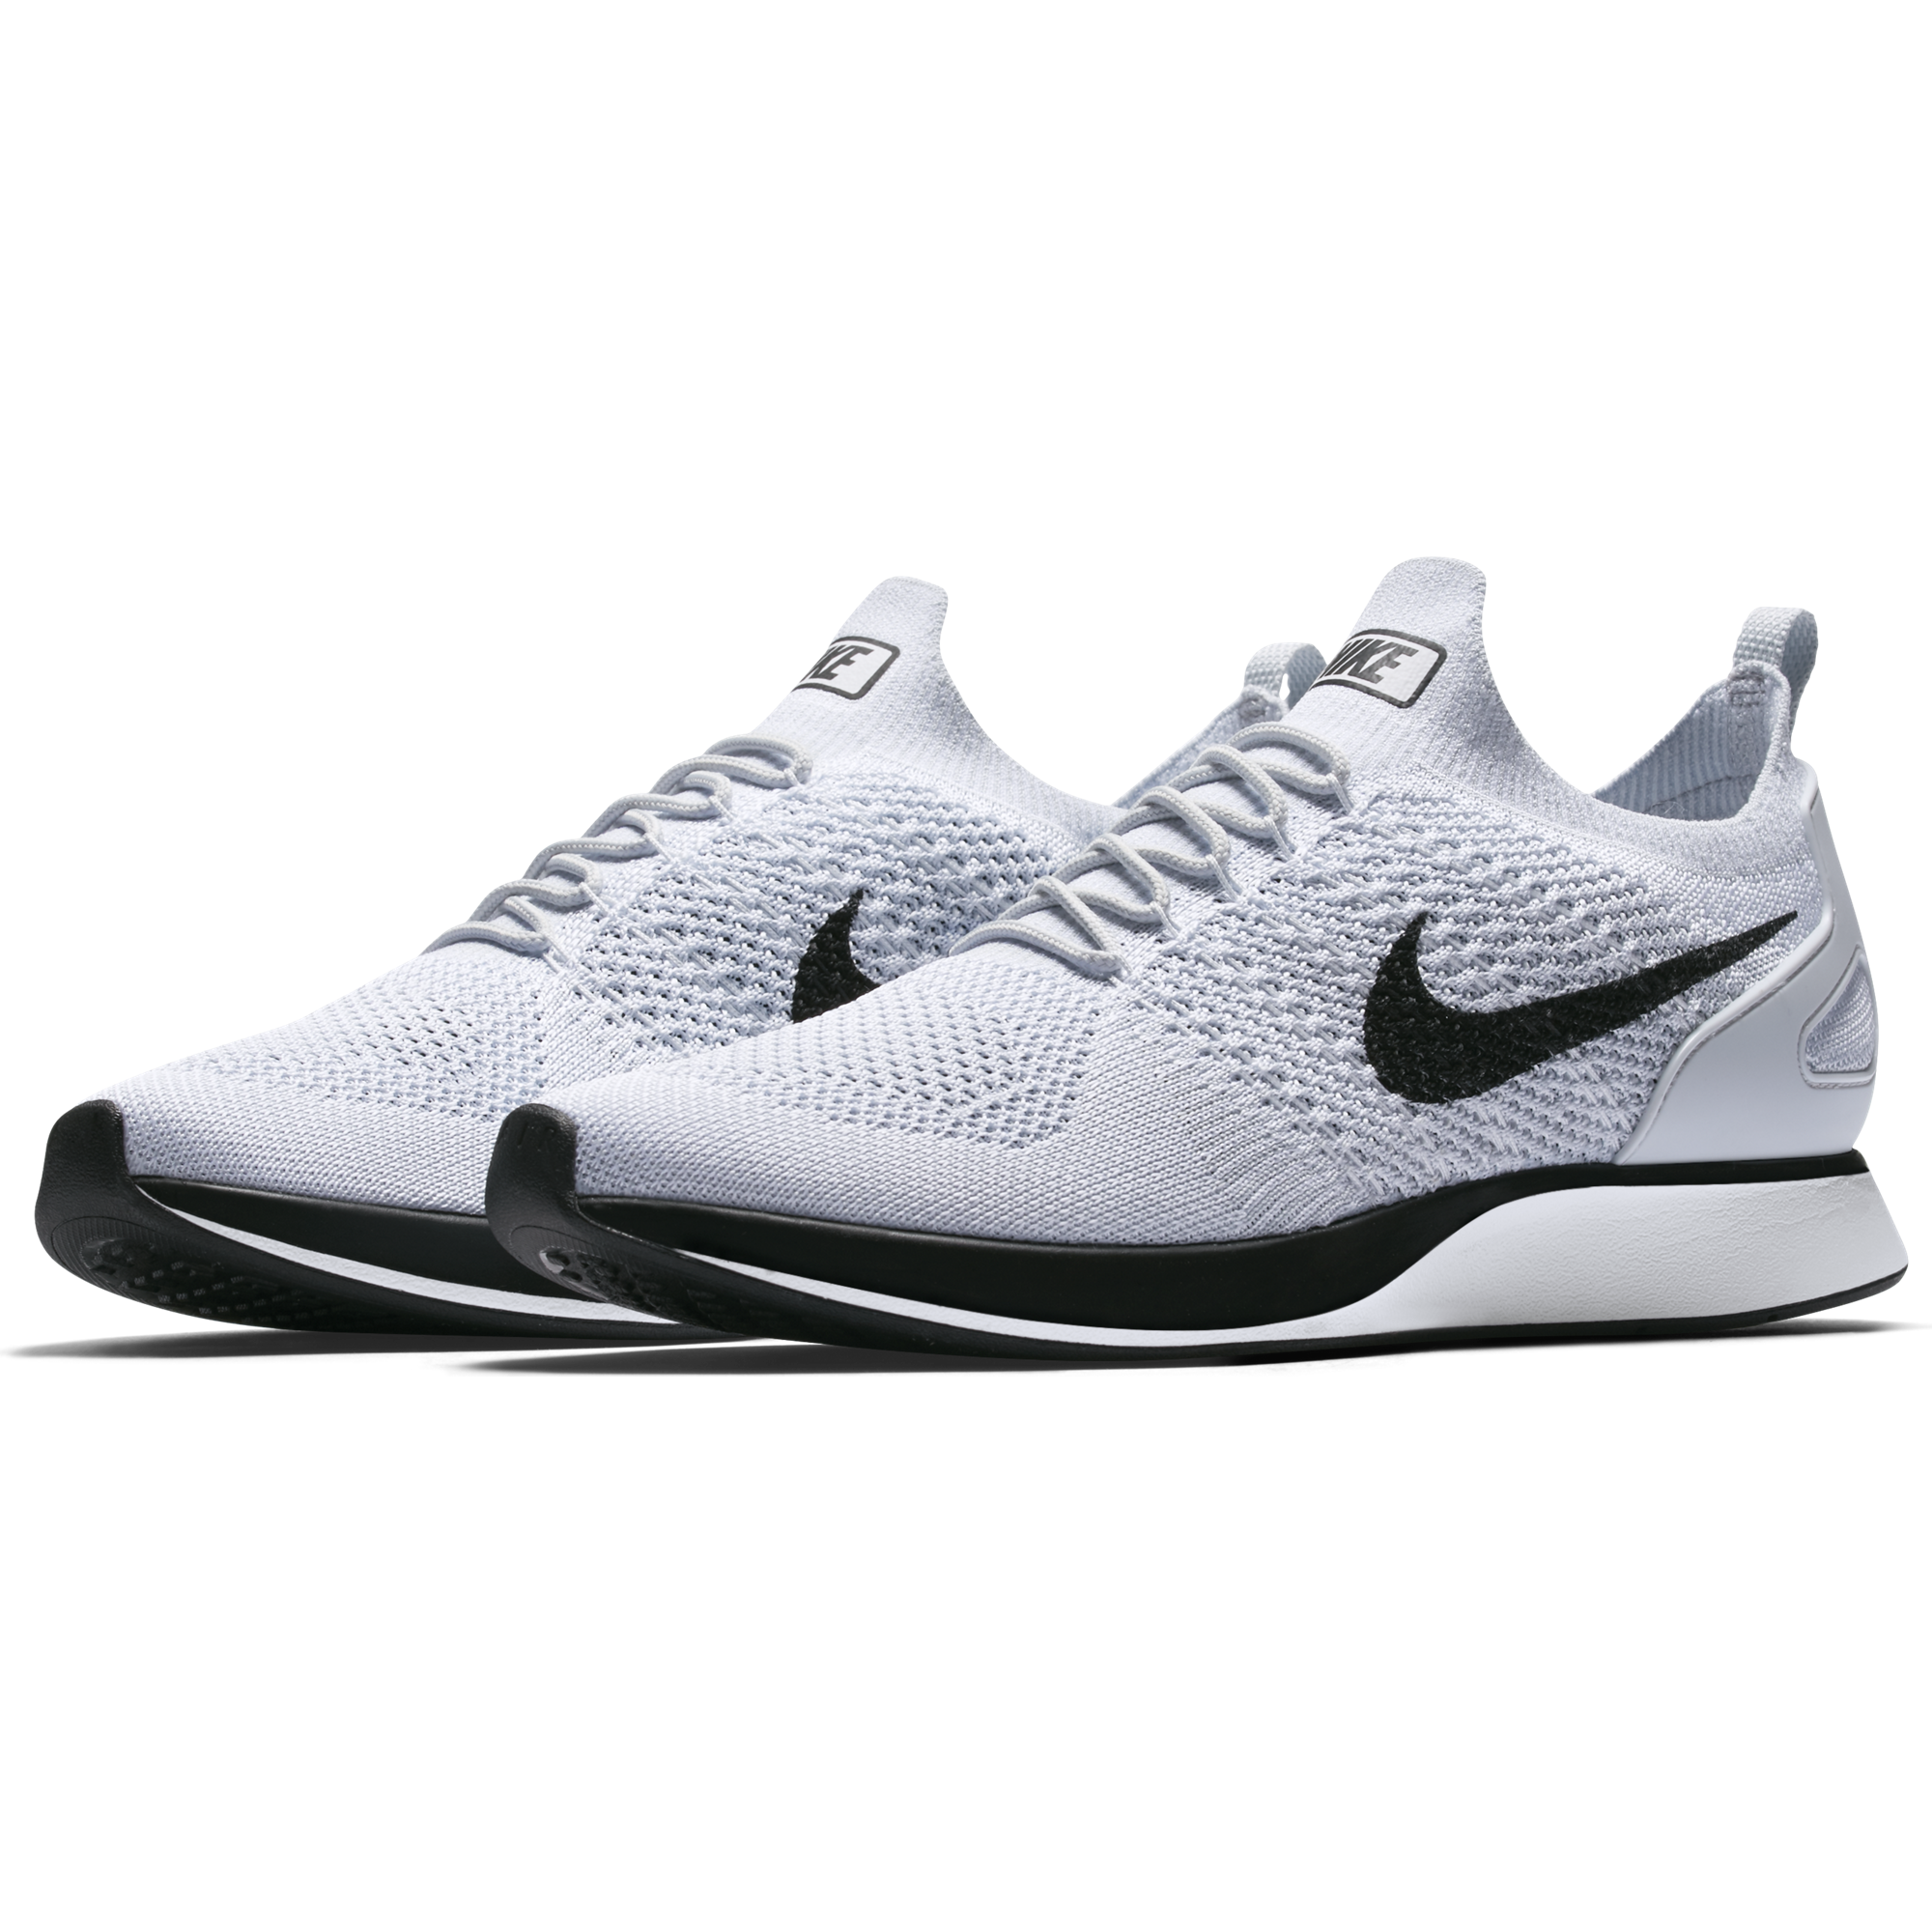 856edce23e4c Nike Air Zoom Mariah Flyknit Racer - Pure Platinum White in 2019 ...